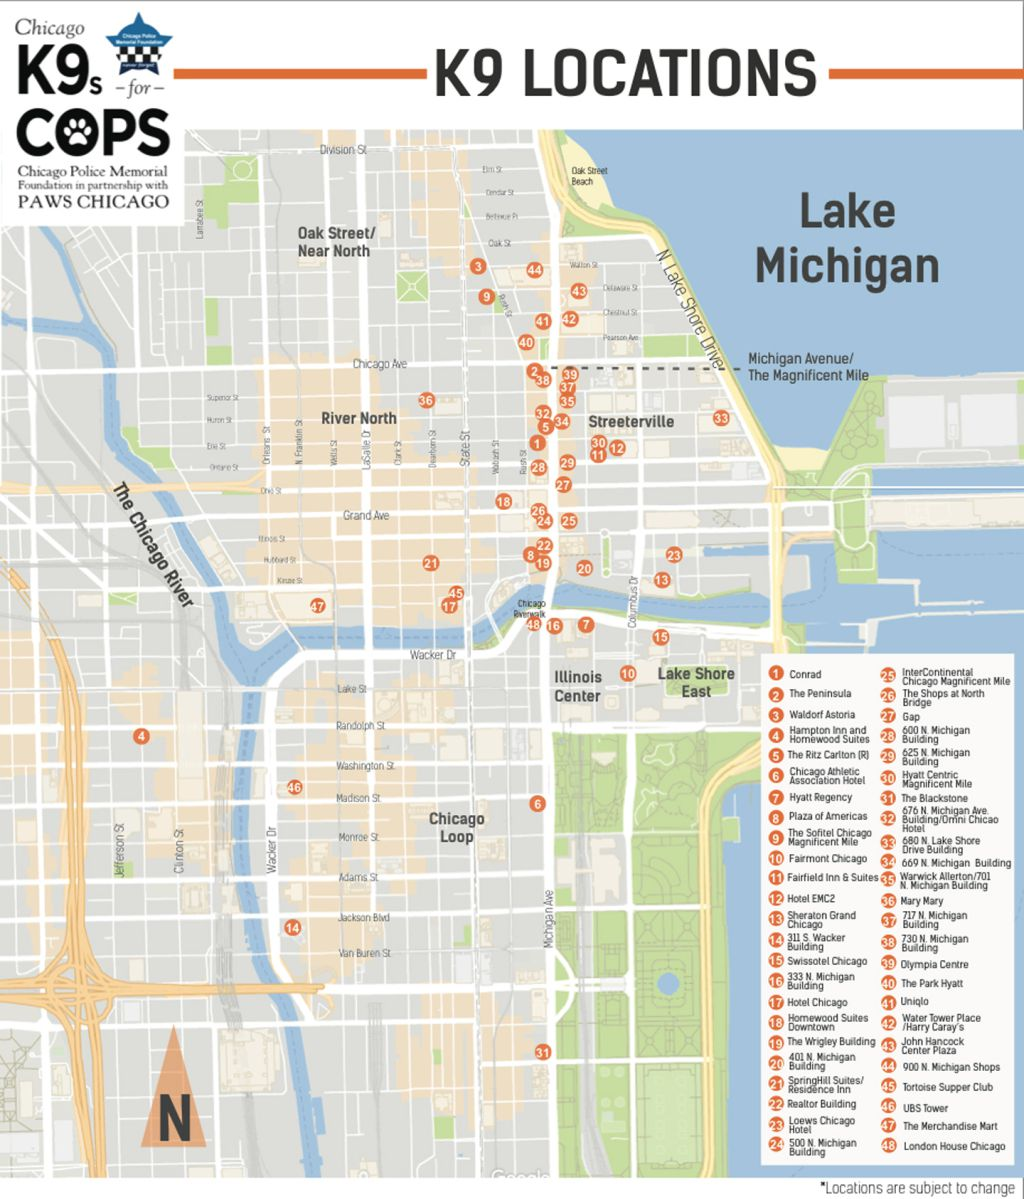 Magnificant Mile's new unofficial mascot: the canine cop - Chicago on